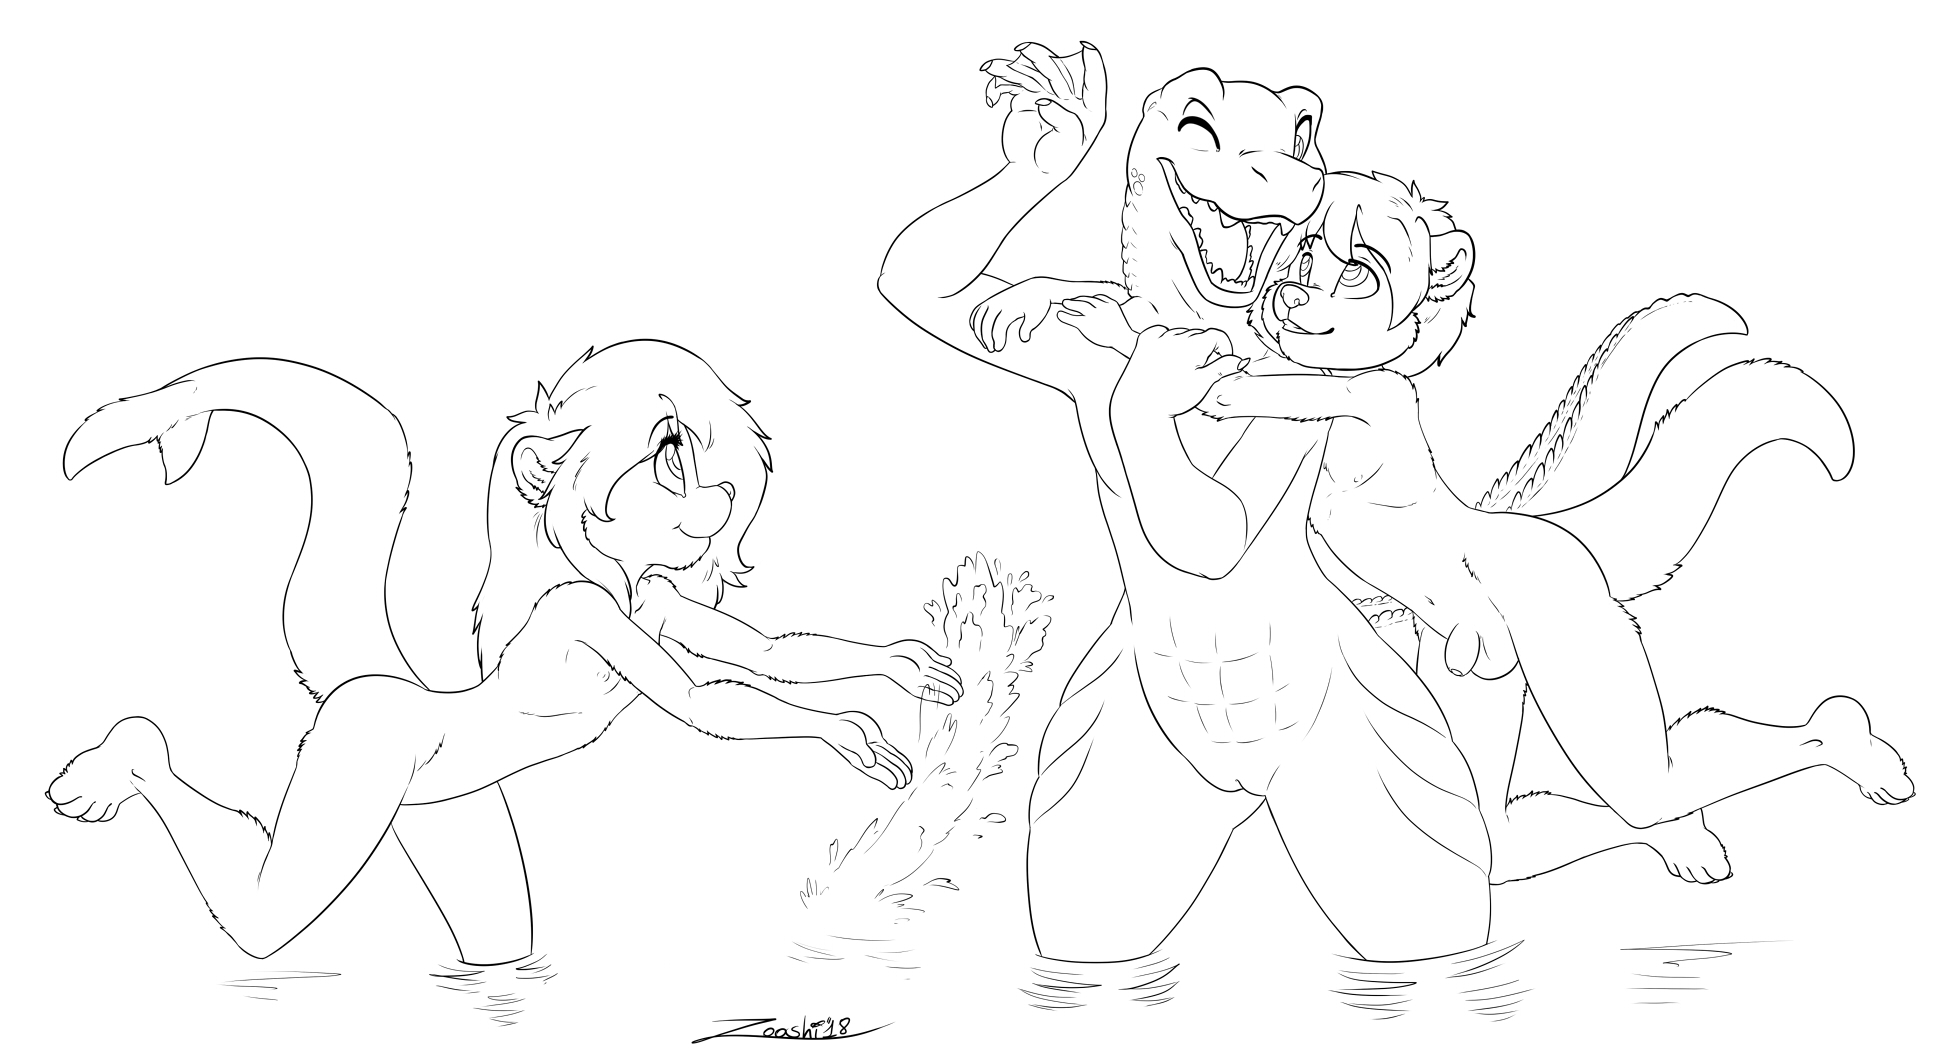 2471365_zooshi_playing_in_water-ink